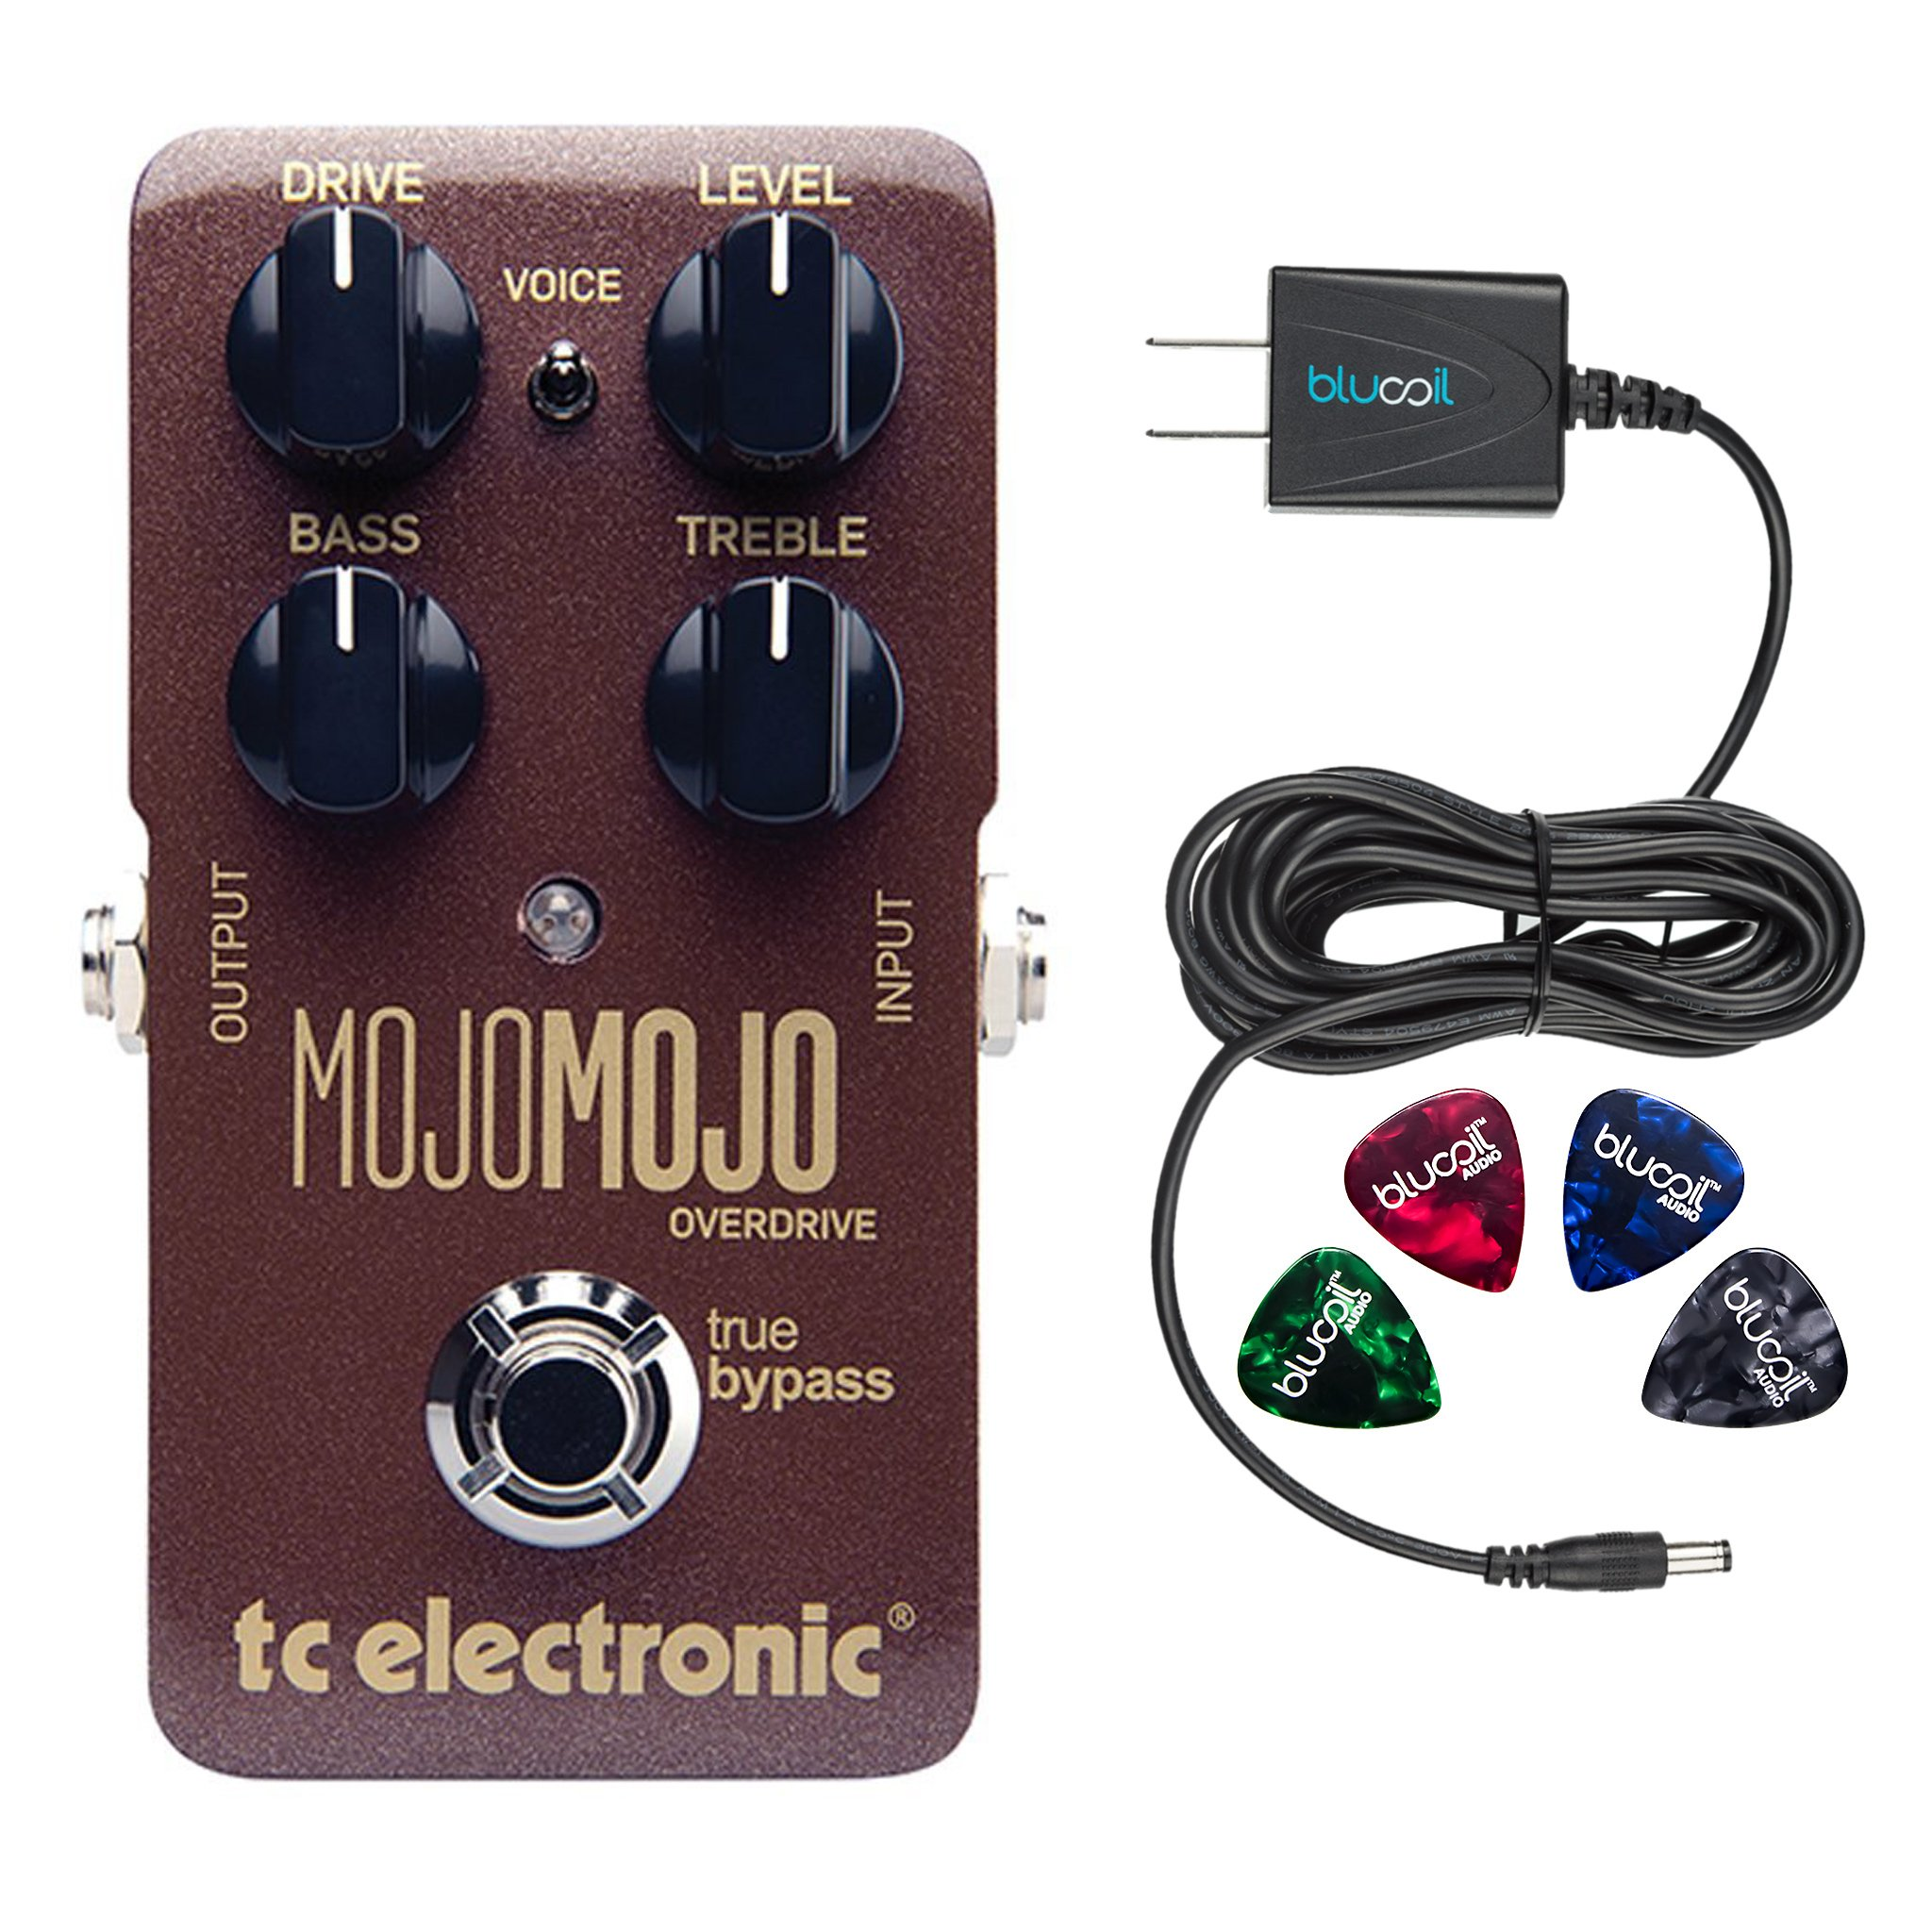 TC Electronic MojoMojo Effects Pedal Overdrive –INCLUDES– Blucoil Power Supply Slim AC/DC Adapter for 9V-DC 670mA with US Plug AND Blucoil Guitar Picks